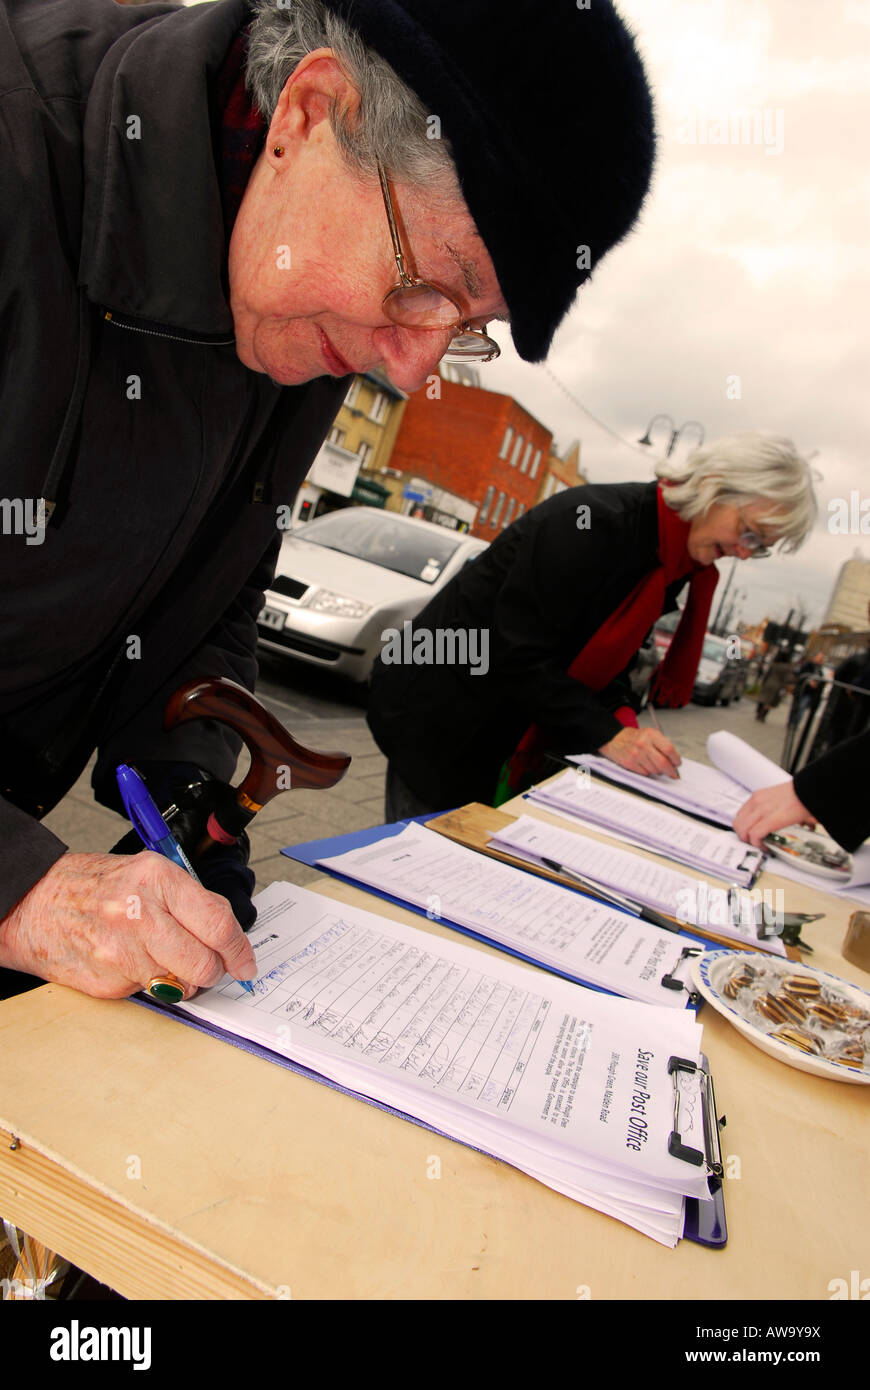 Members of the public signing a petition against possible closure of their local Post Office, High Street, New Malden, - Stock Image